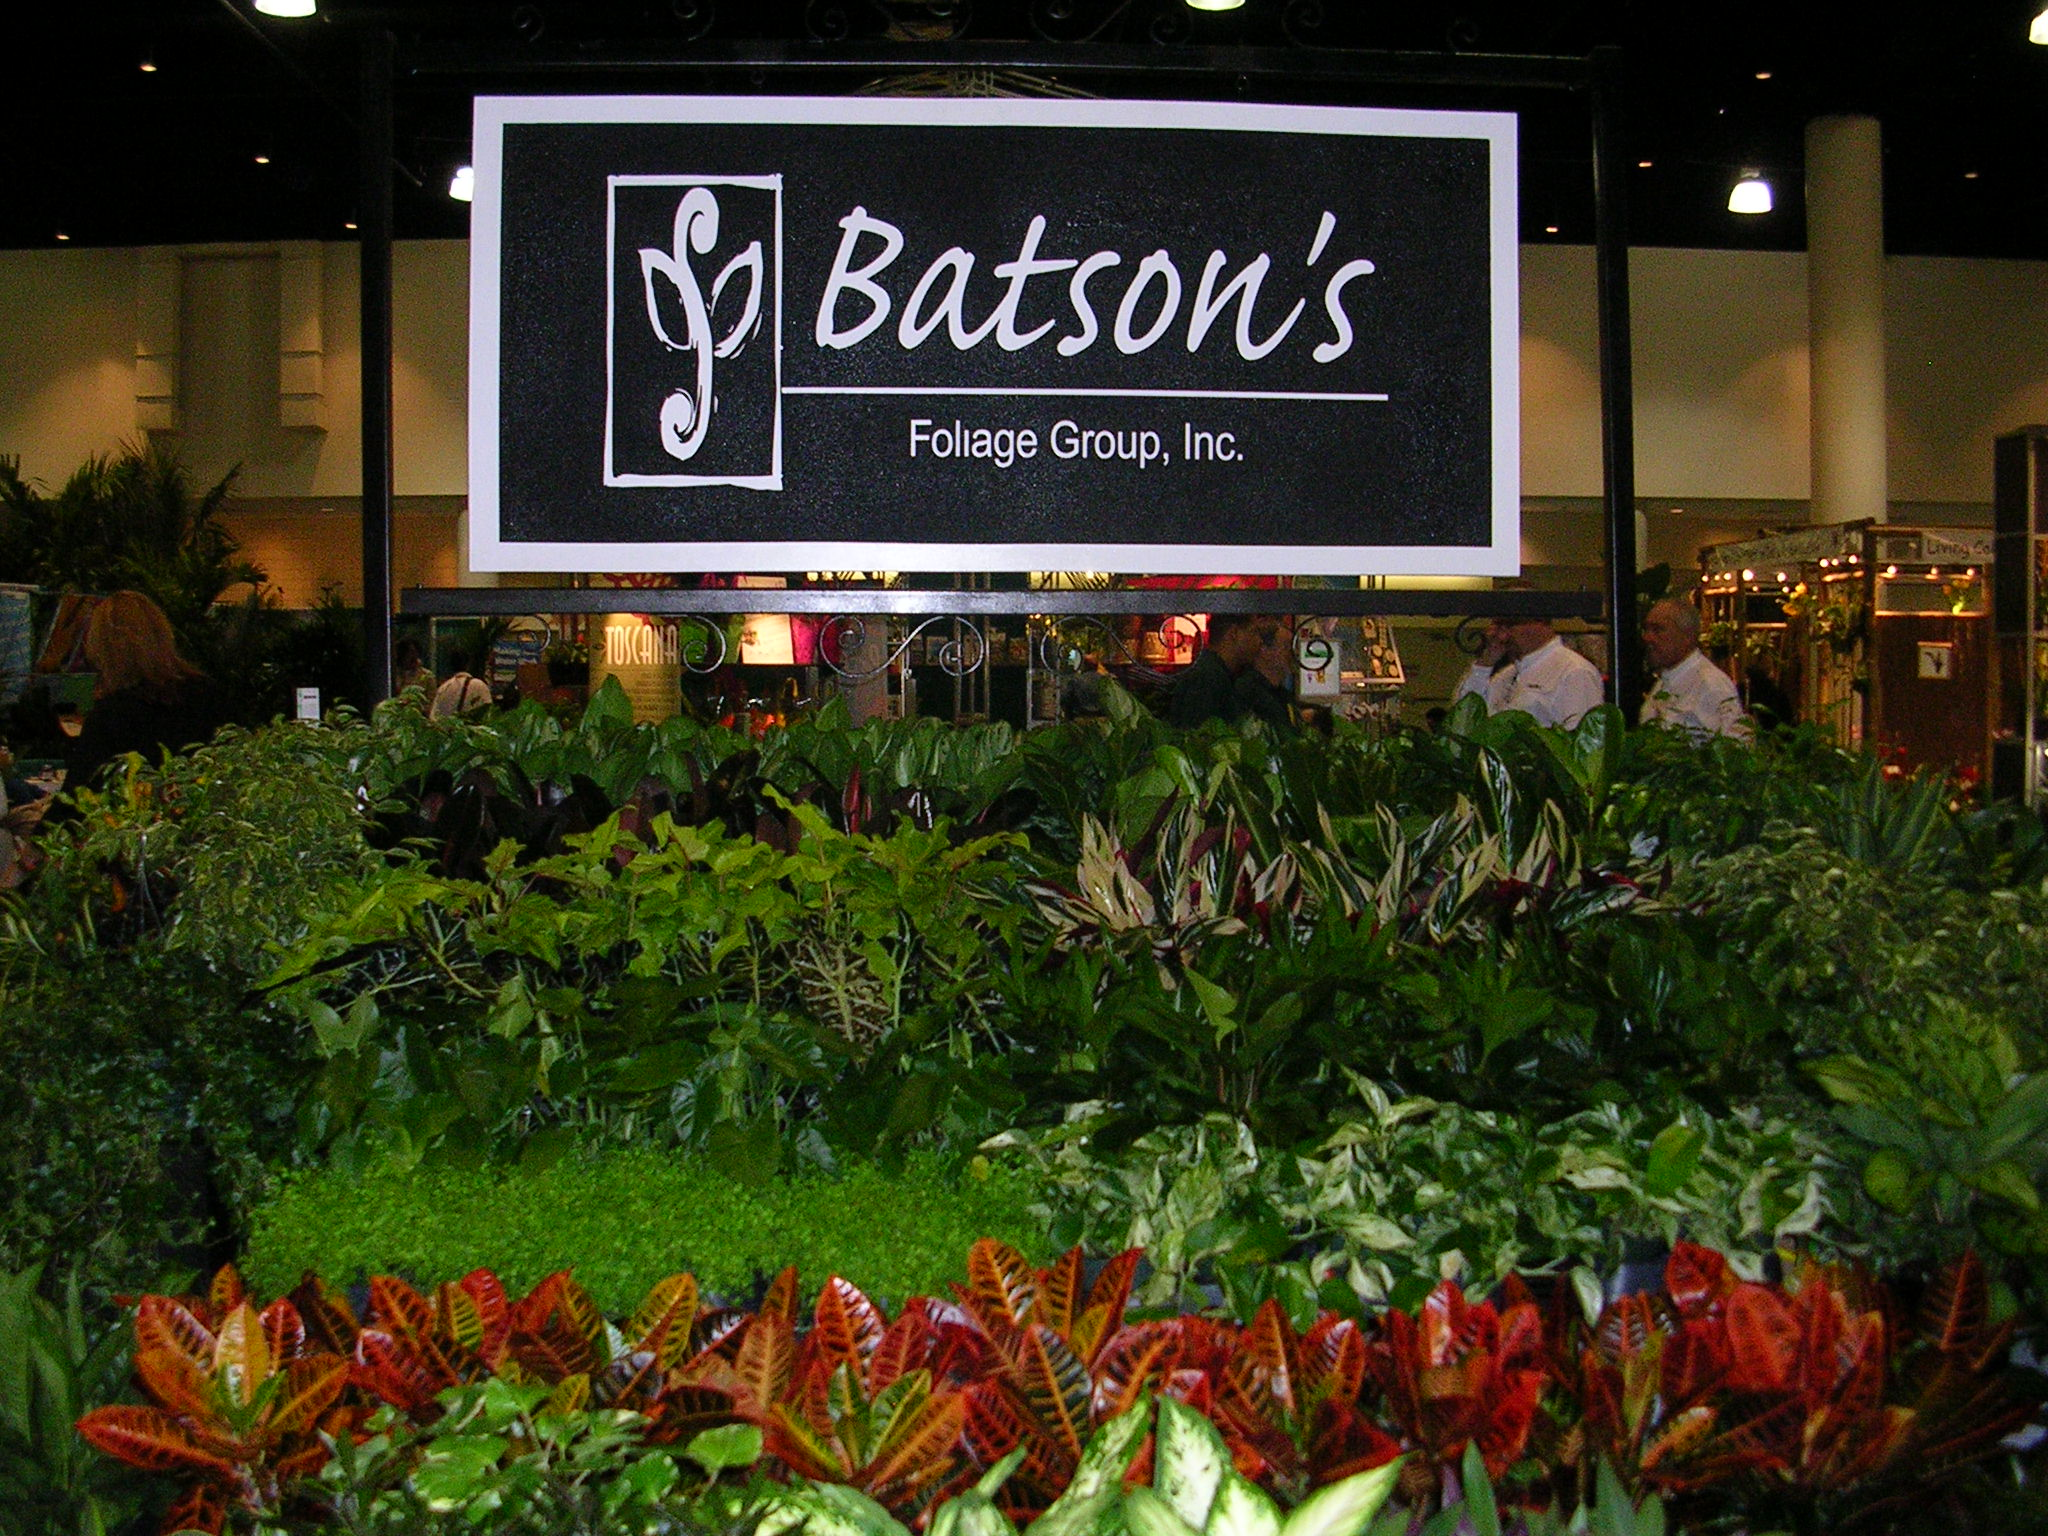 Batson's Foliage Group has a wide variety of products.